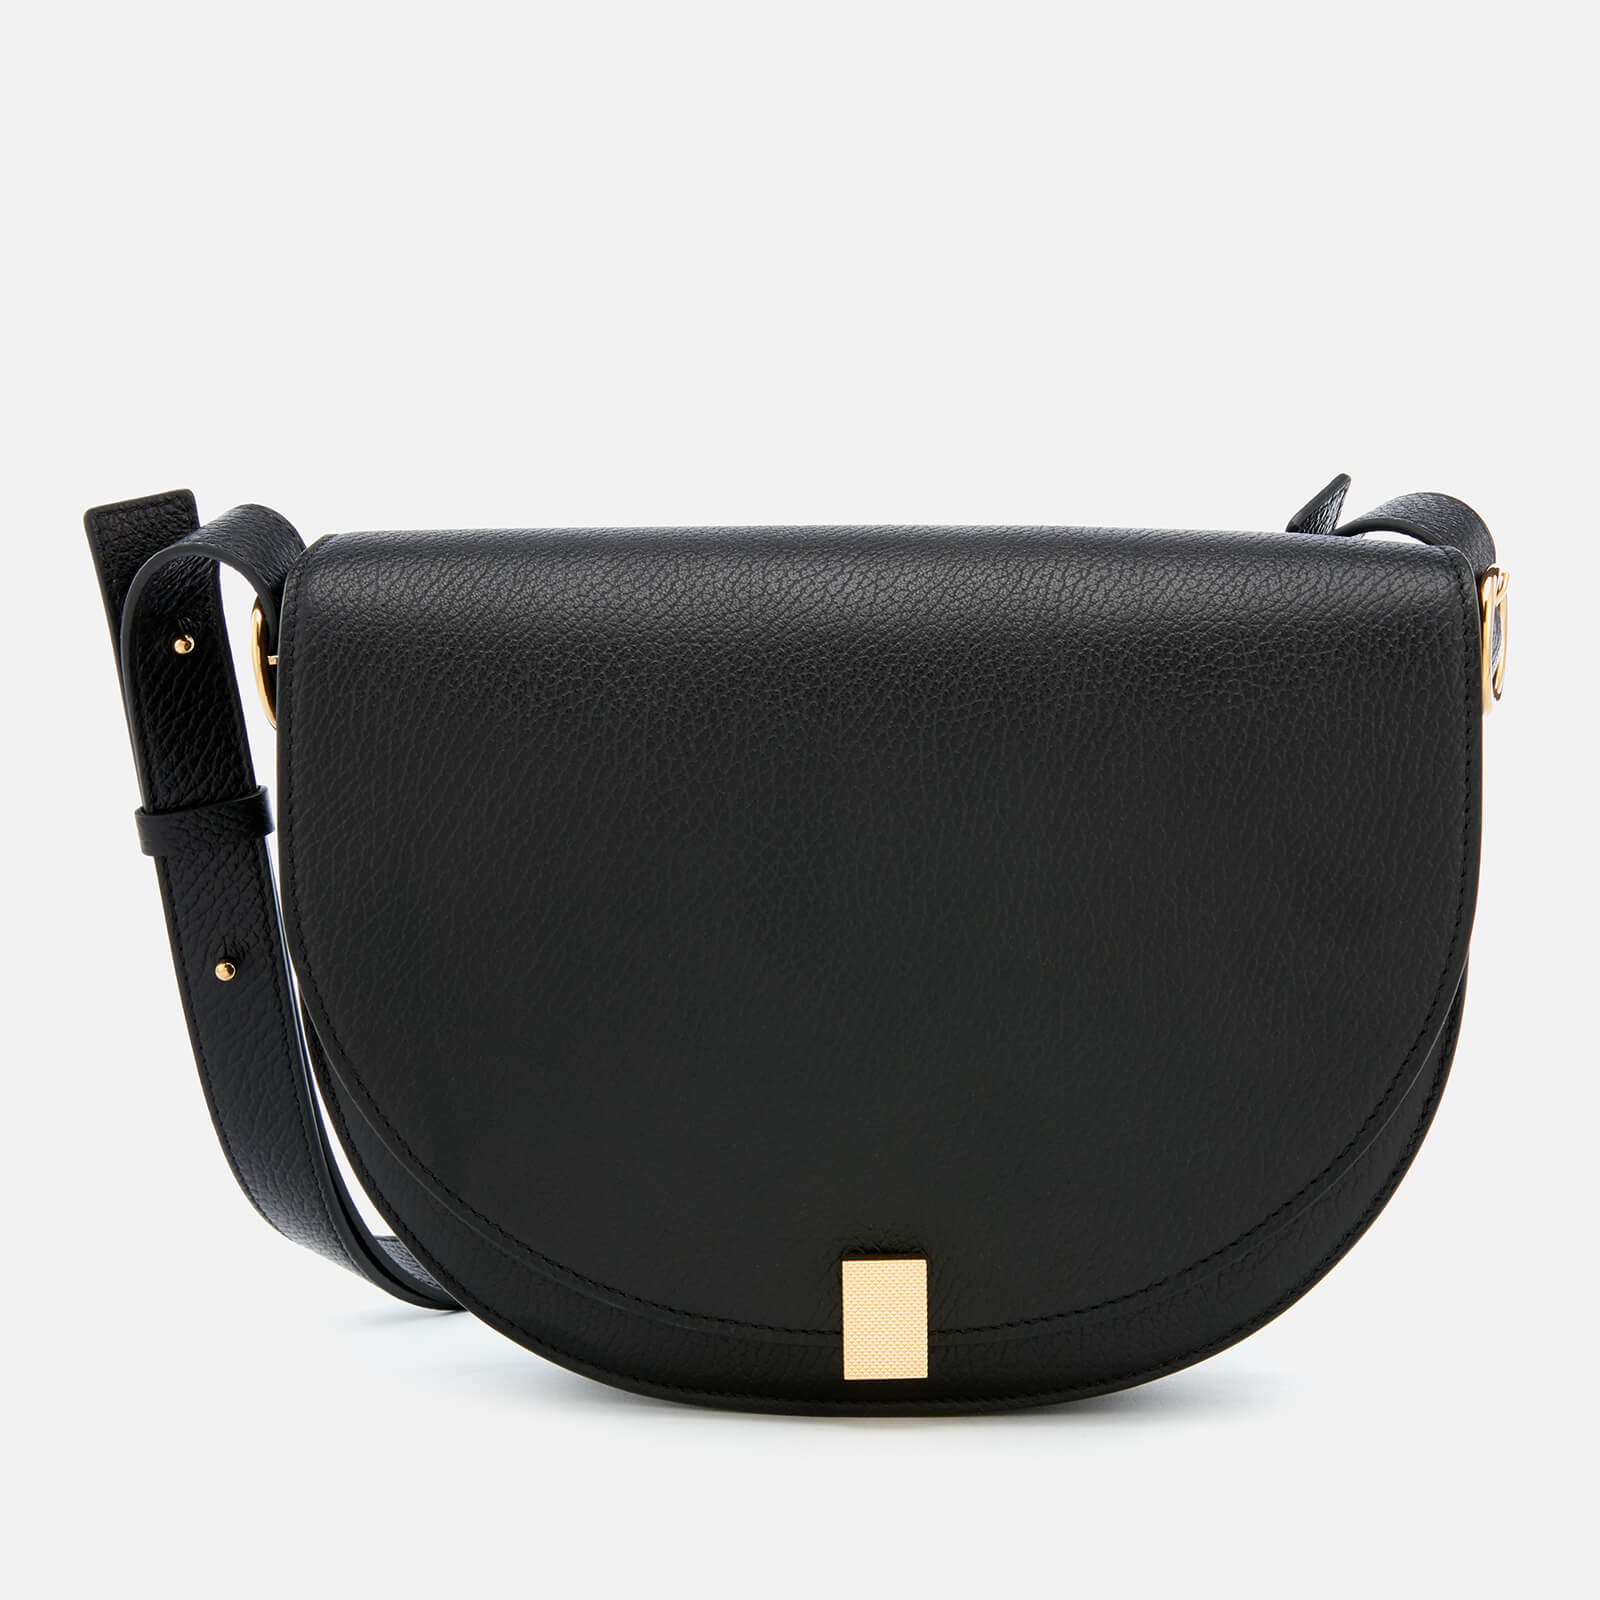 e687d9eded80b Victoria Beckham Women s Half Moon Box Bag - Black - Free UK ...